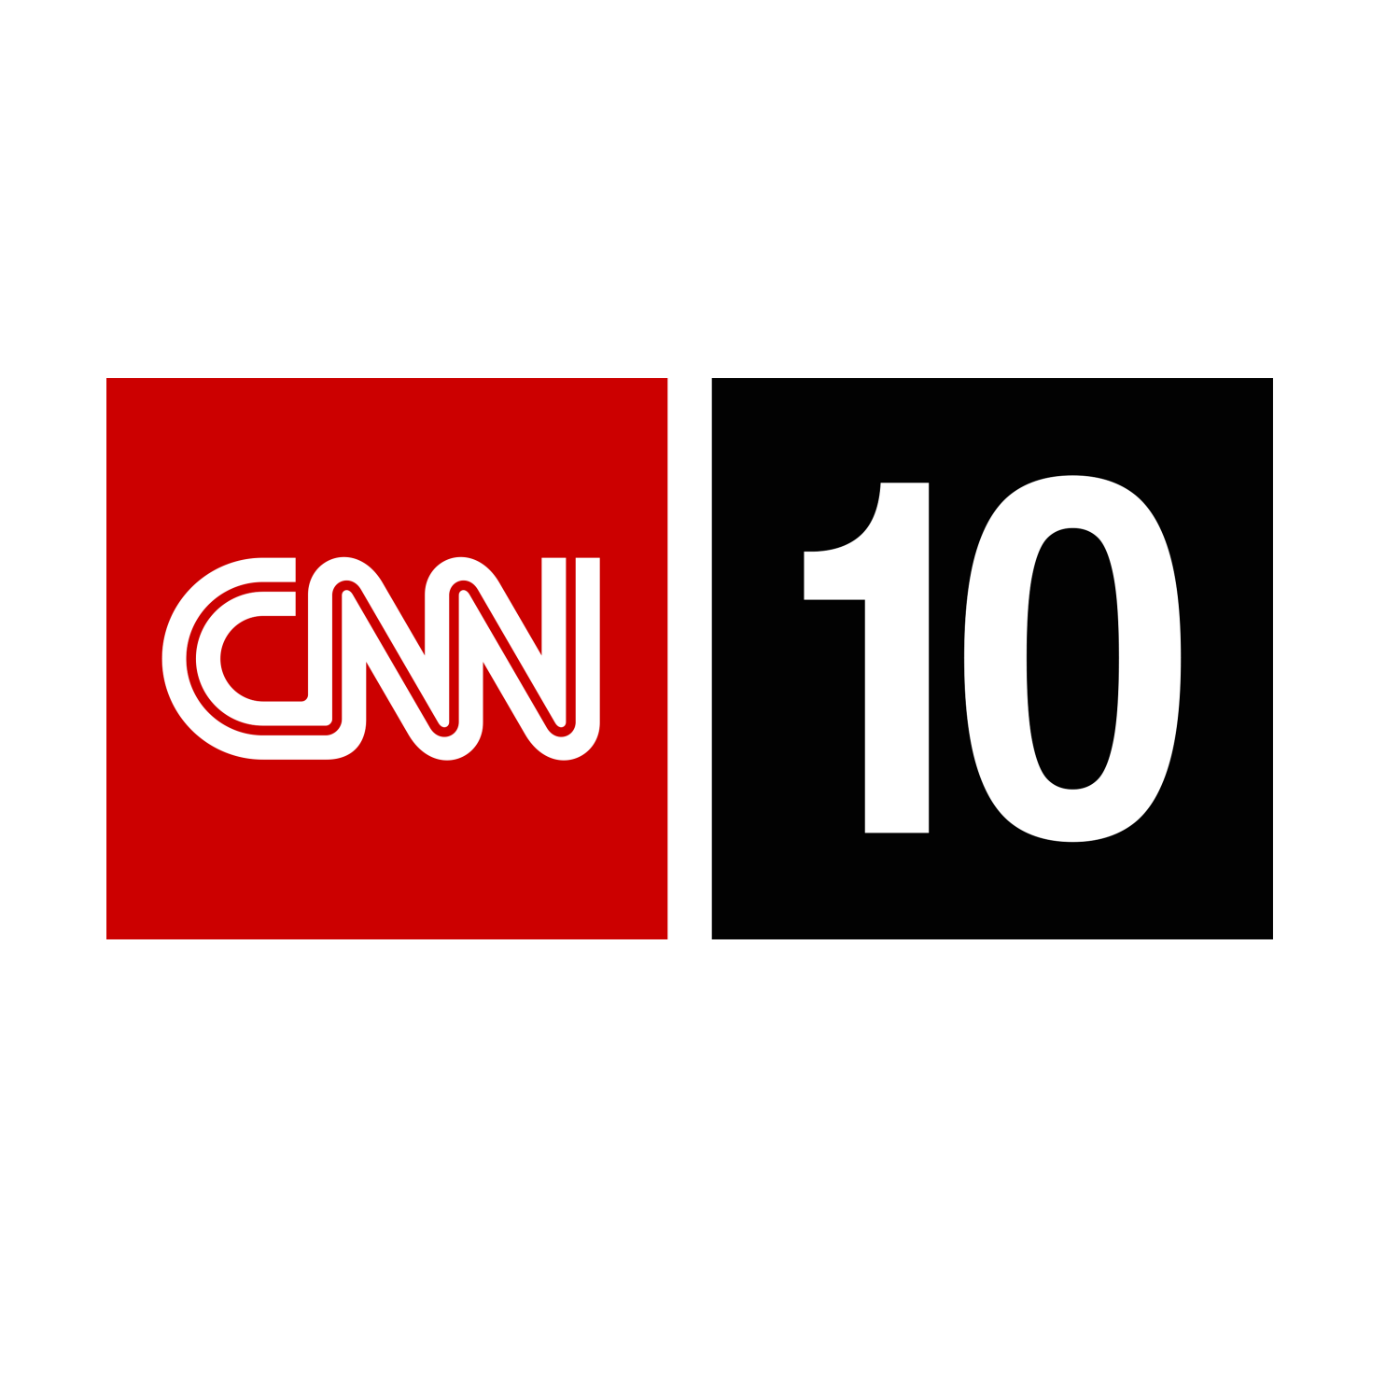 CNN Student News - September 21, 2012